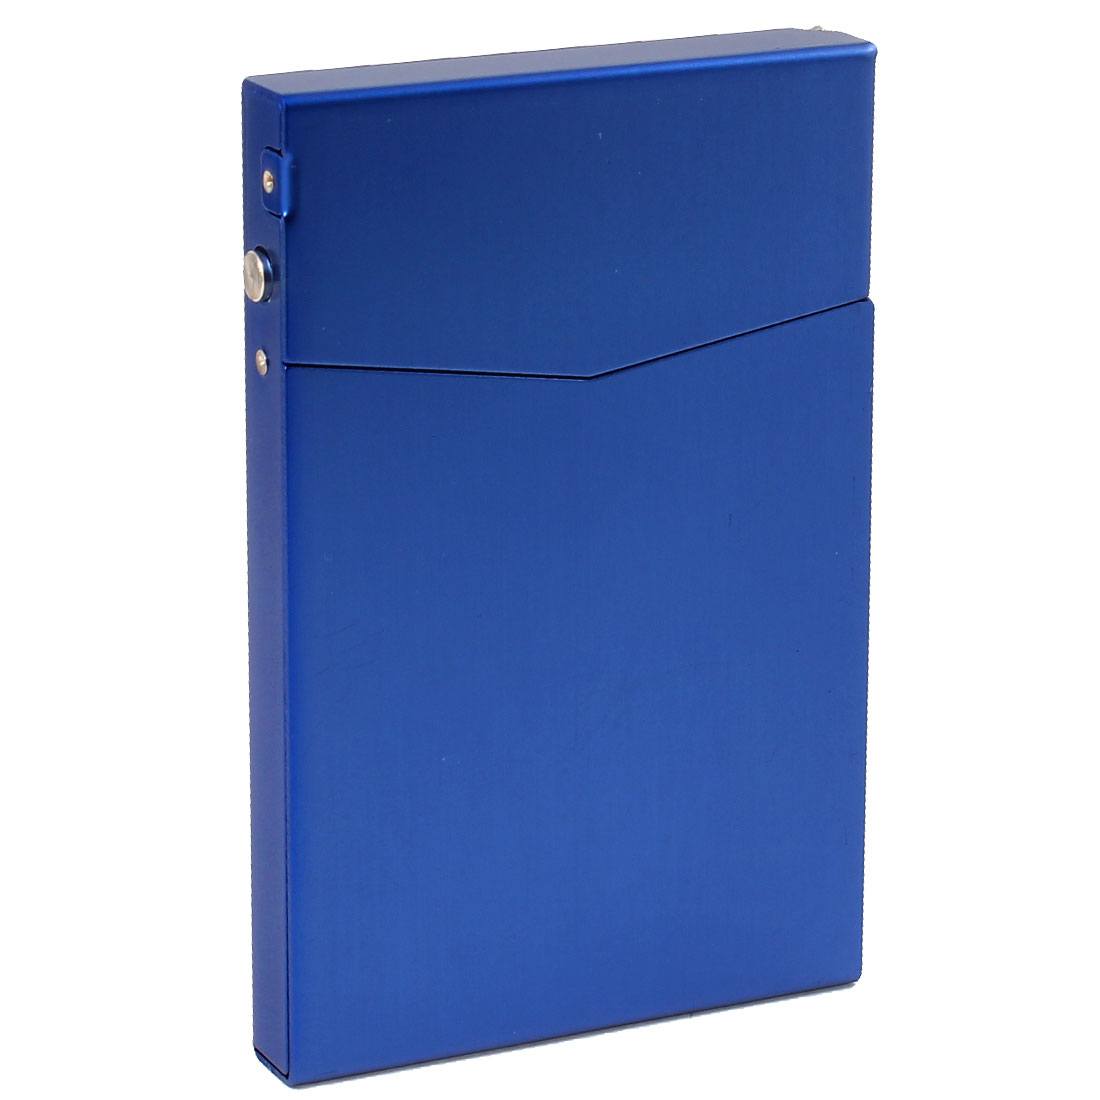 Blue Aluminum Rectangle Design Full Pack 7 Pcs Cigarette Case Box Holder 90mmx60mmx10mm